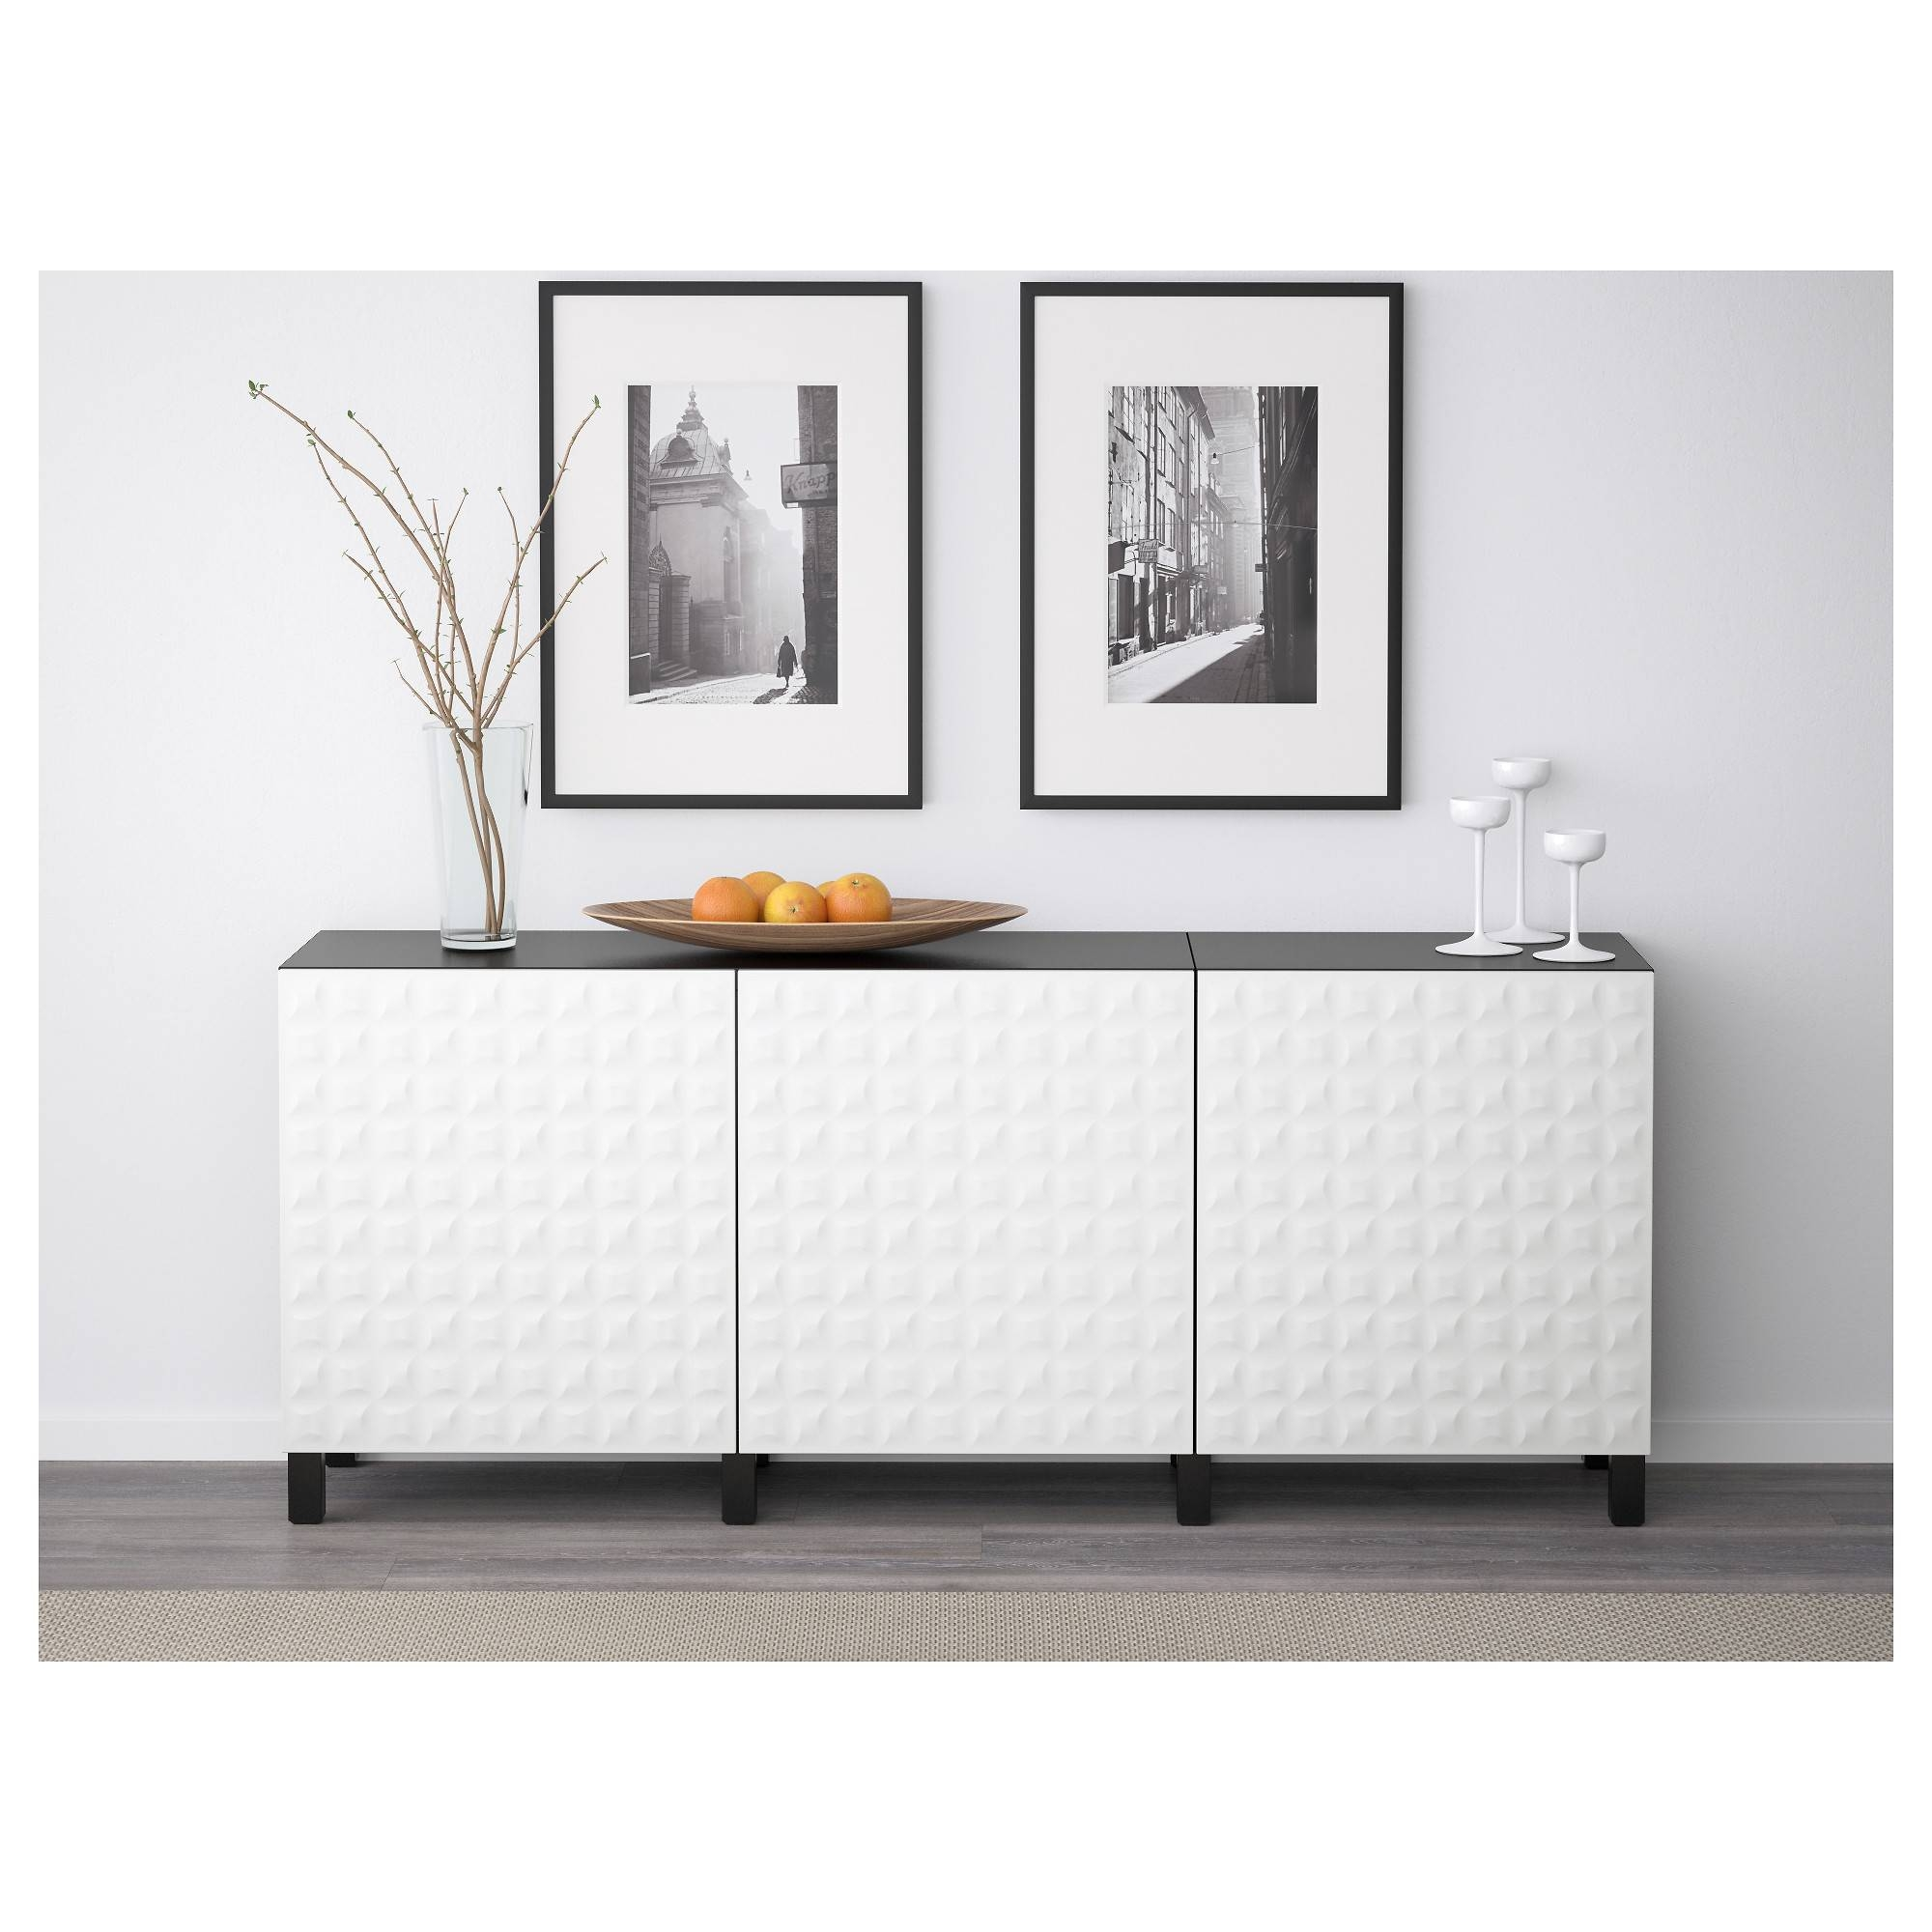 Bestå Storage Combination With Doors - White/selsviken High-Gloss in Ikea Besta Sideboards (Image 5 of 15)